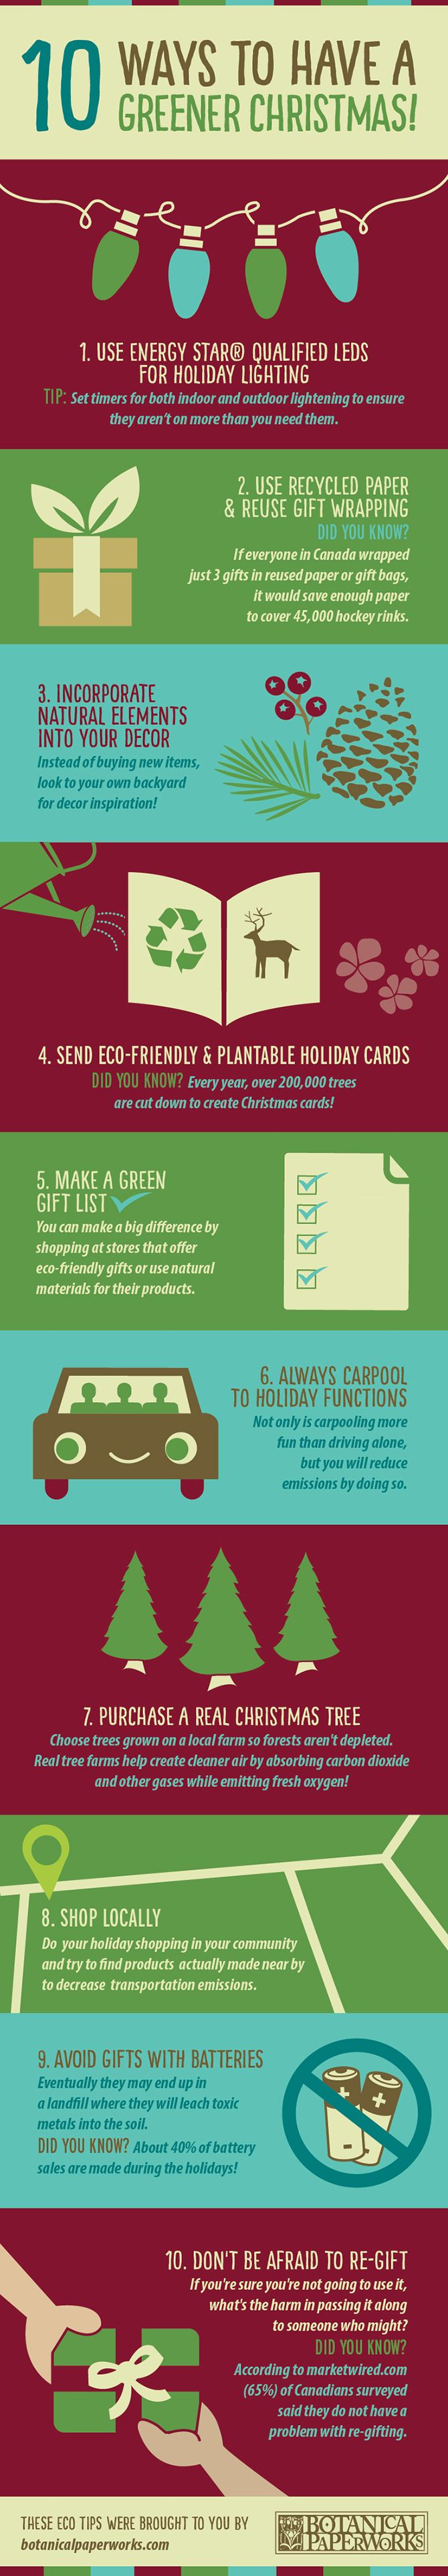 1000 images about keep america beautiful on pinterest for Small and friendly holidays